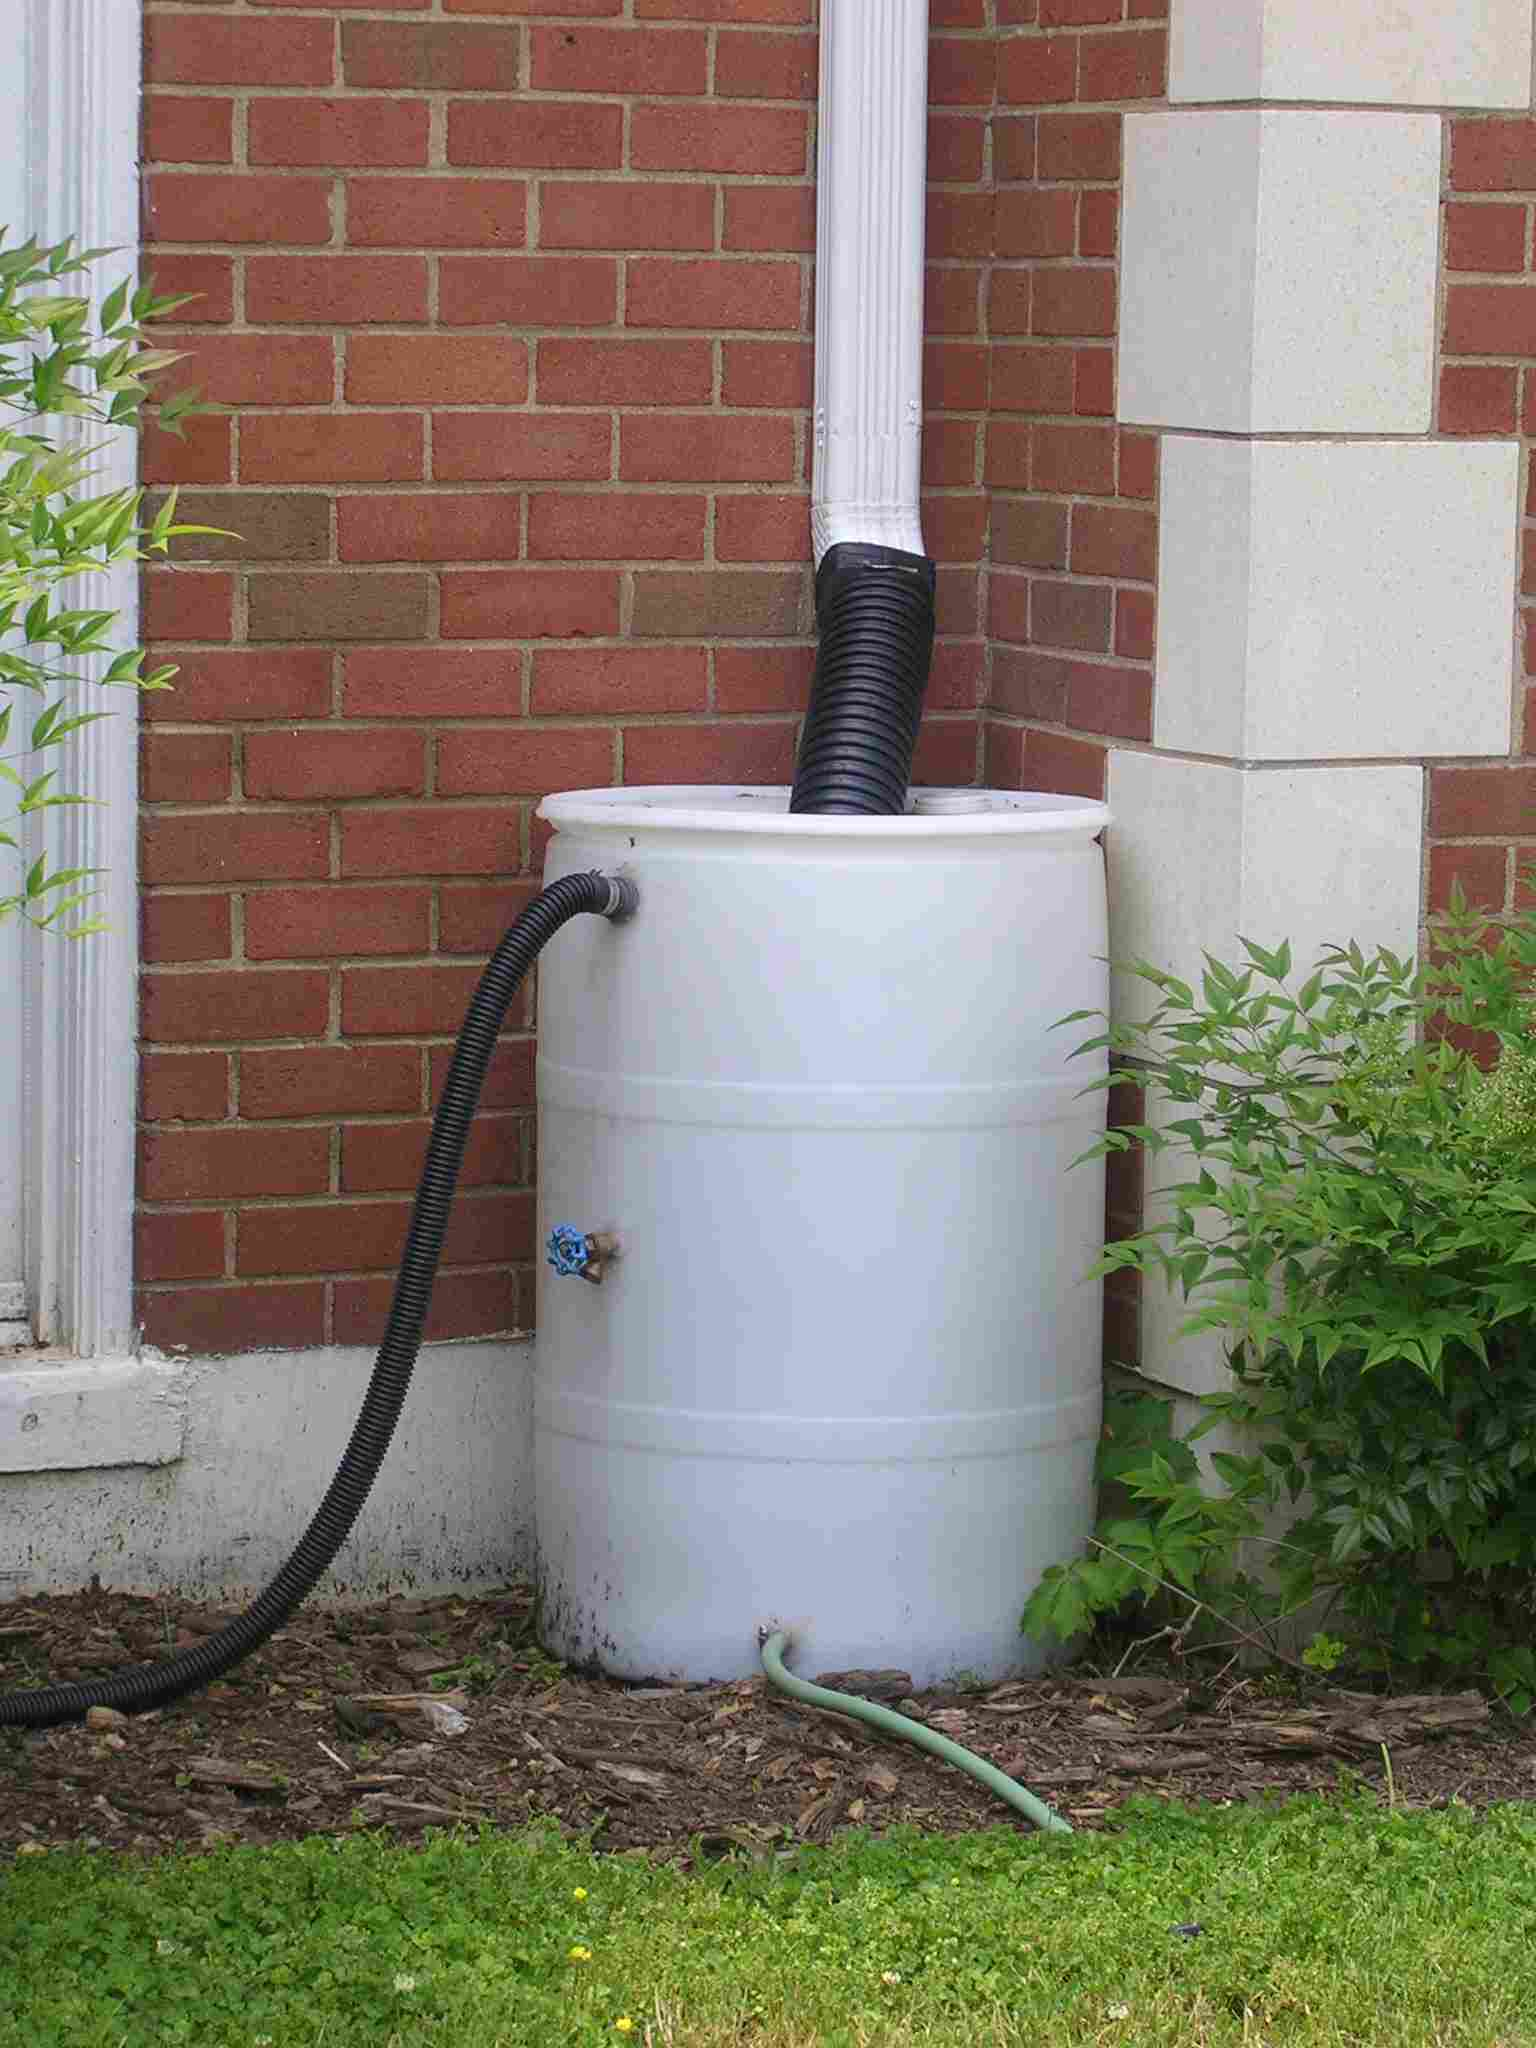 Downspout connected to rain barrel